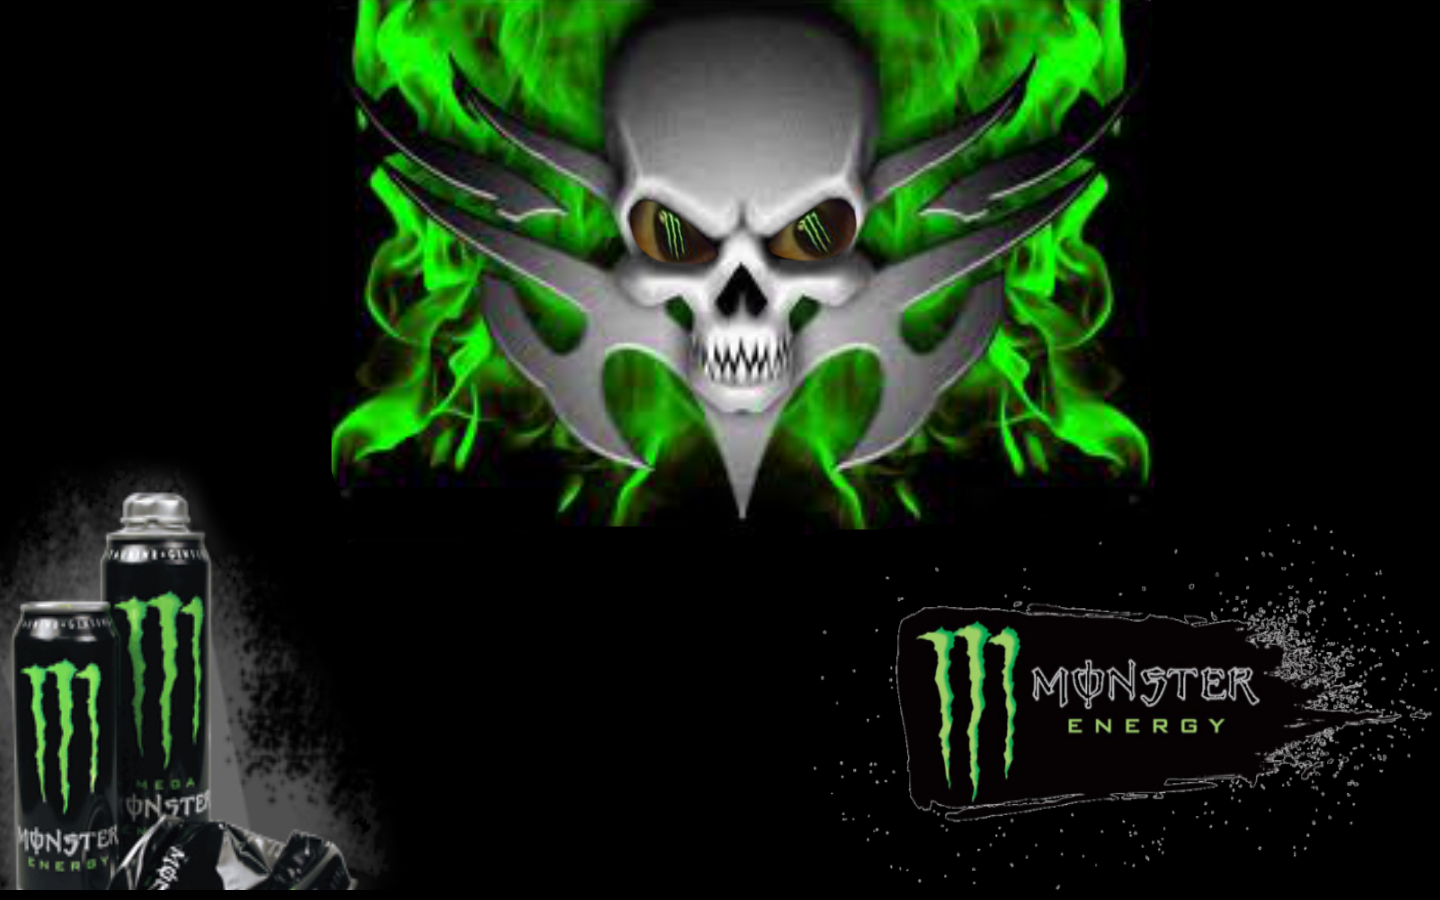 Monster Energy Wallpaper and Background 1440x900 ID401451 1440x900